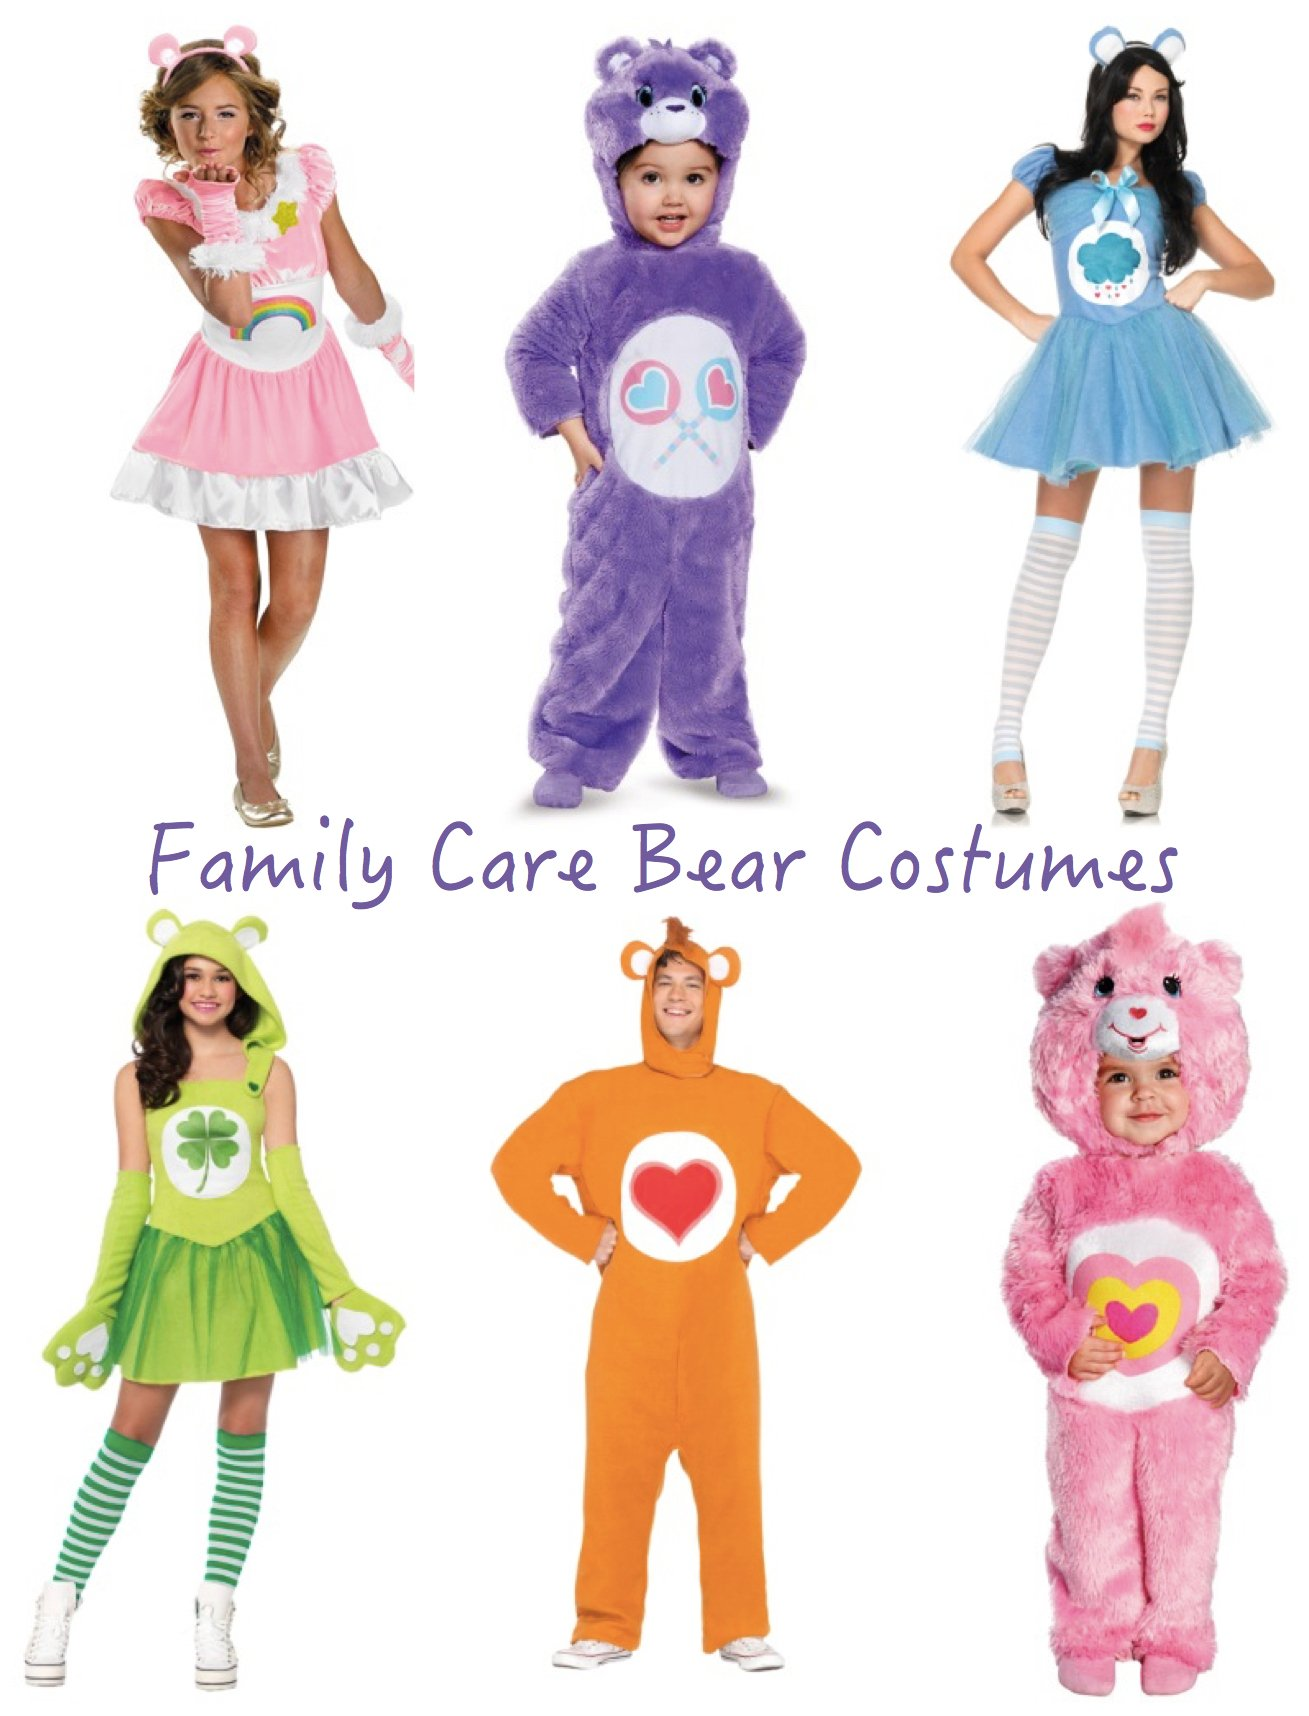 Family Care Bear Costumes